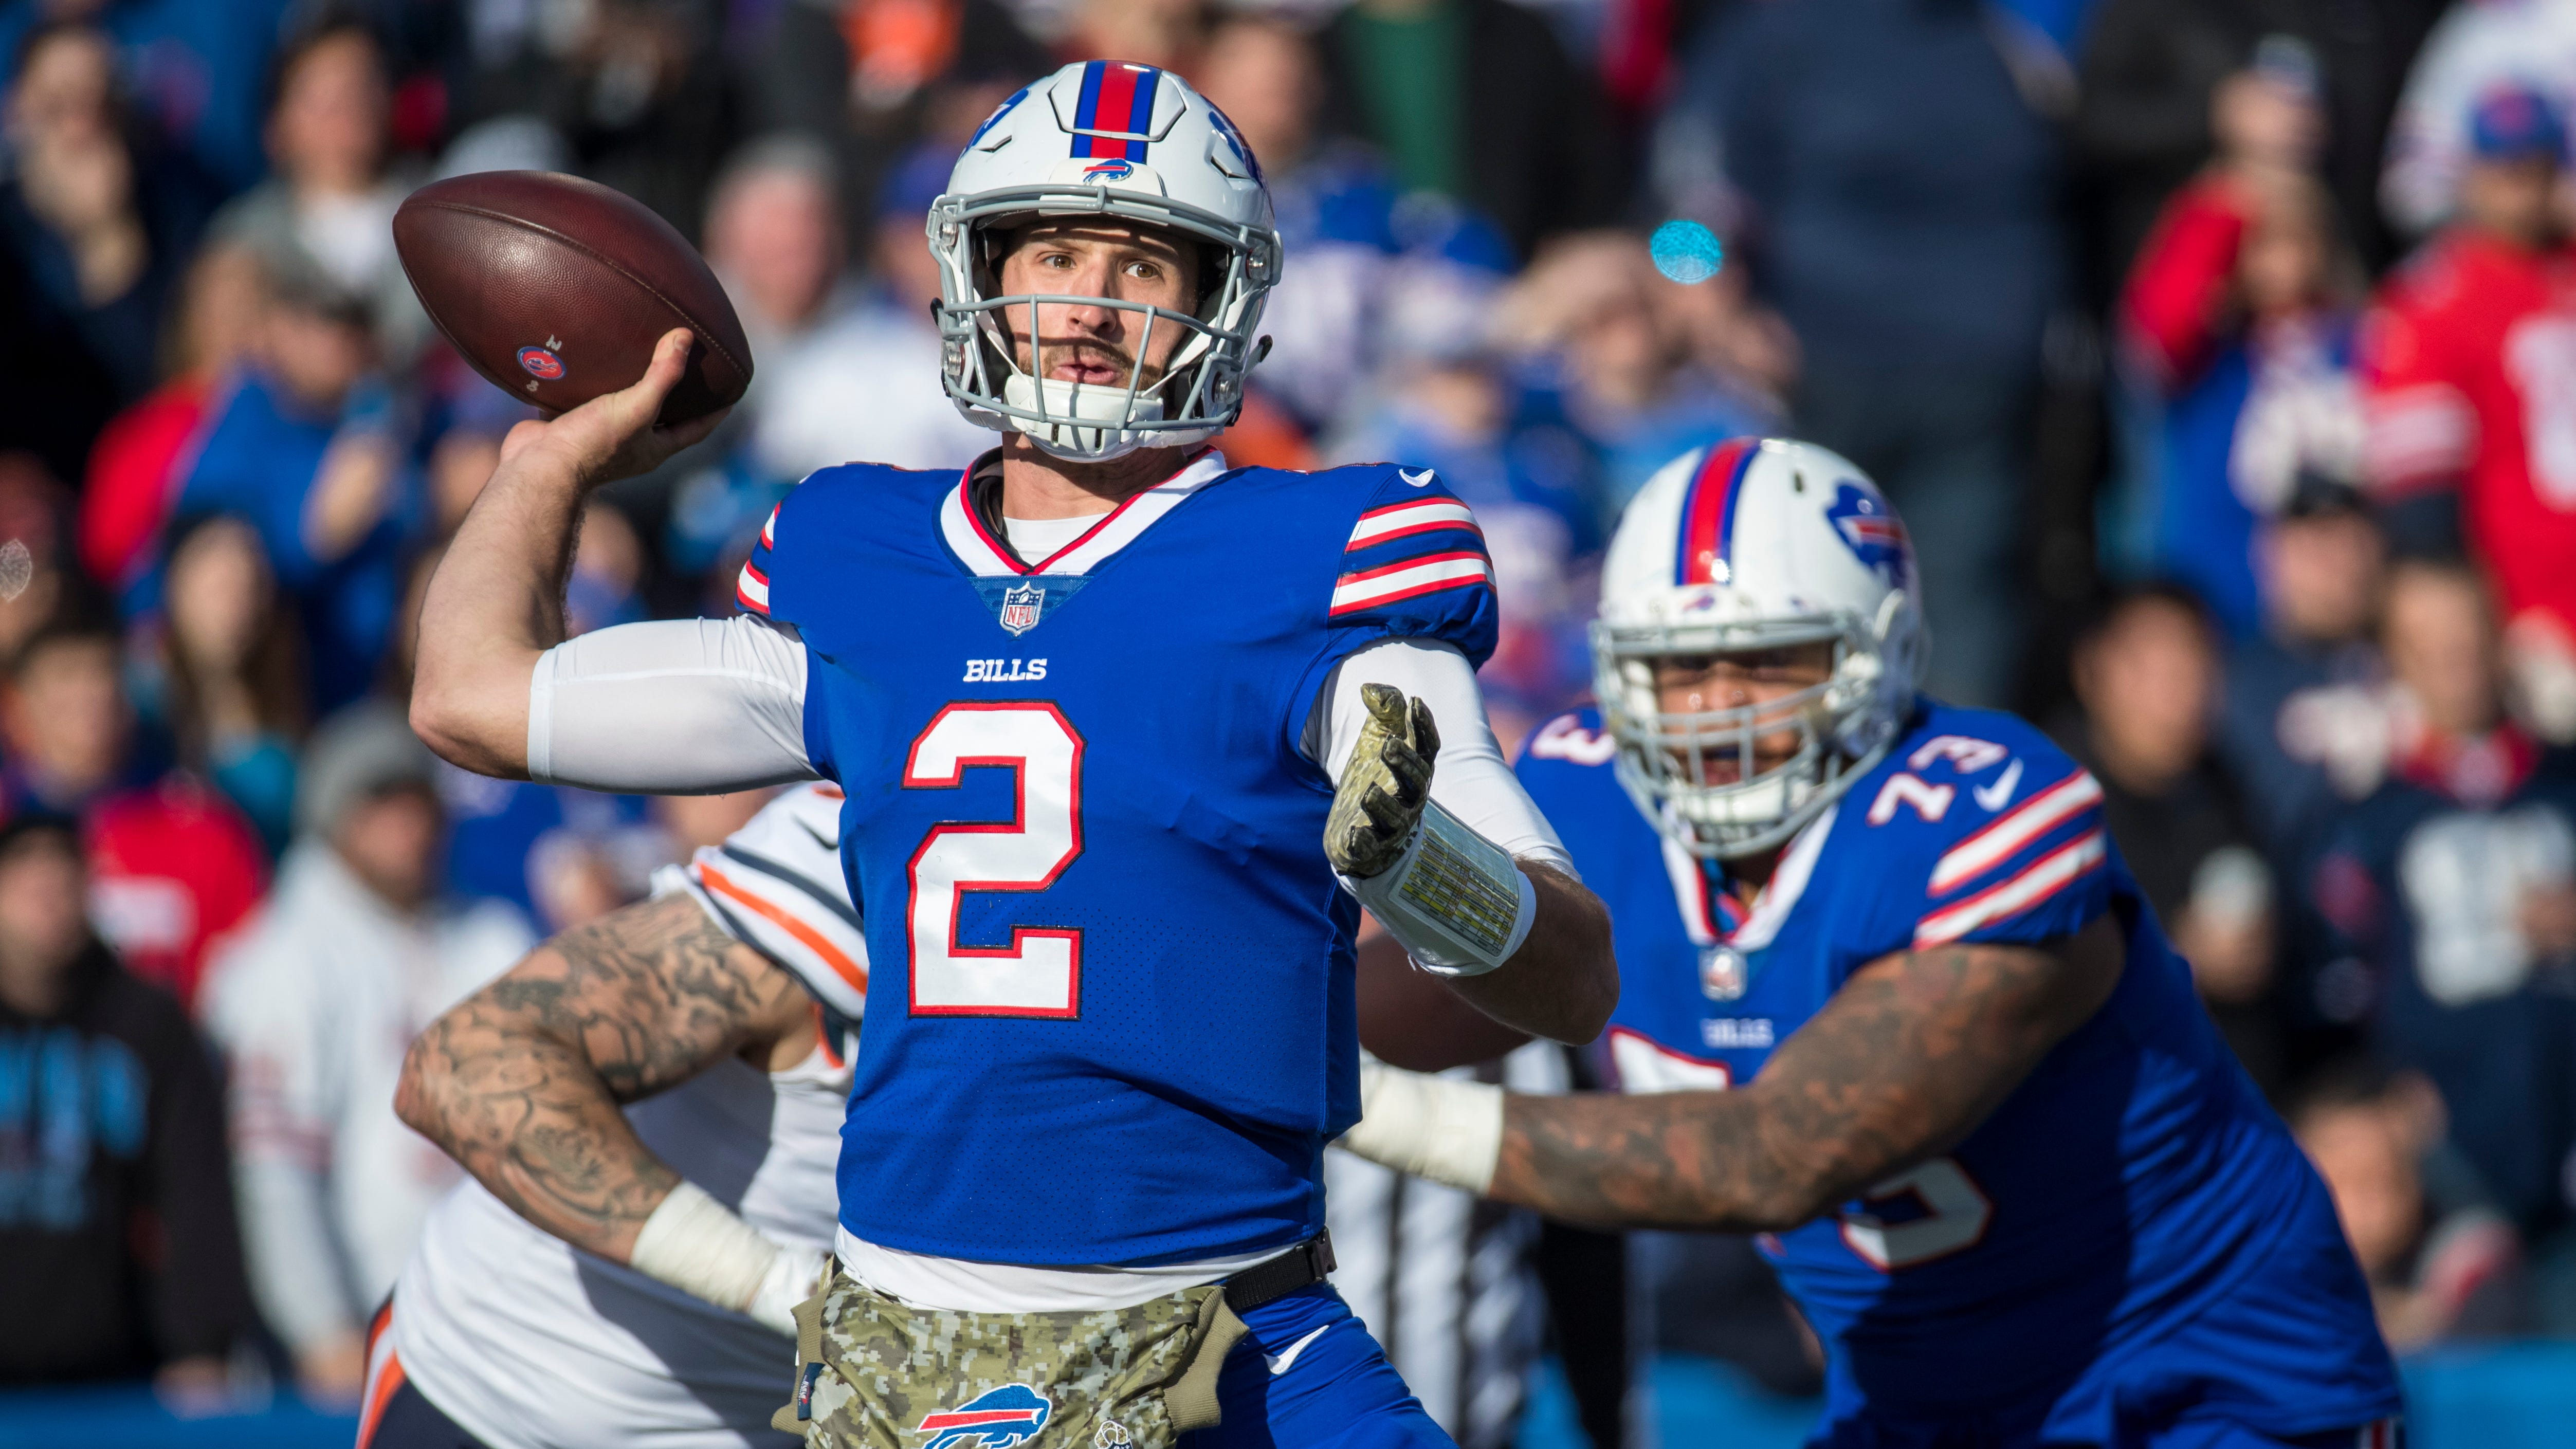 Leo Roth: 'I will miss Nathan Peterman the person'